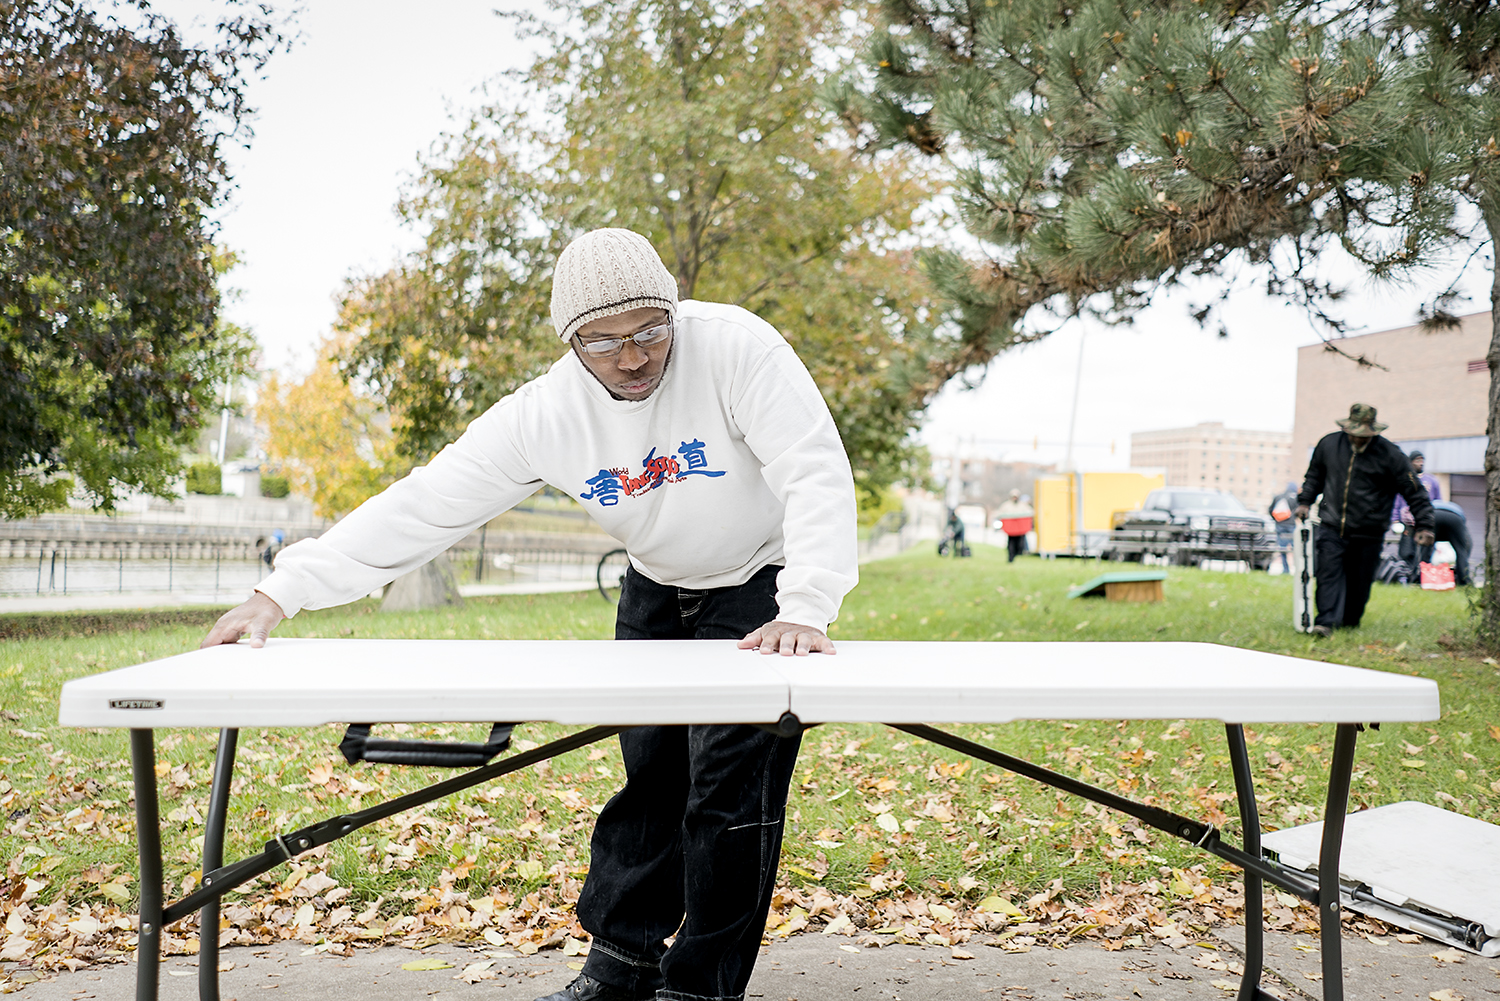 "Flint, MI - Saturday, October 28, 2017: Burton resident Paul C. Owens, 31, sets up a collapsable table at the Riverbank Park along the Flint River for the Flint Community Cookout. Owens, a self-proclaimed introvert, uses the cookout as a means to connect with others. ""I'm really shy around people, but this helps,"" he says. Owens has been volunteering for 4 years and comes ""to do the Lord's work.""